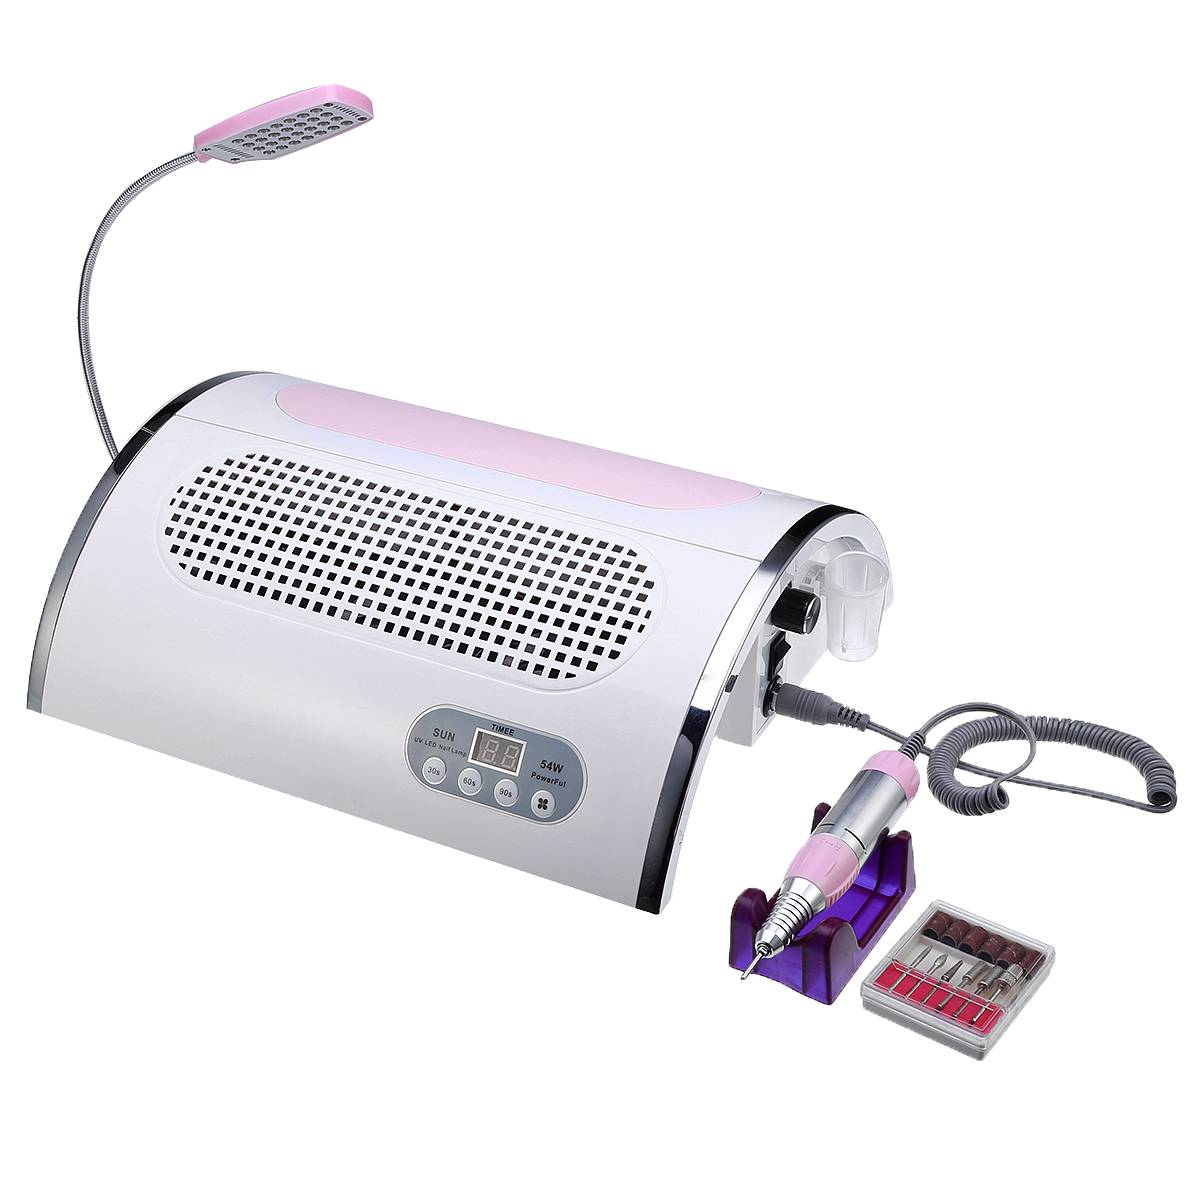 Professional UV LED Vacuum Cleaner Lamp For Nails 54W Nail Dryer Nail Dust Collector With Nails Drill Polisher Salon MachineProfessional UV LED Vacuum Cleaner Lamp For Nails 54W Nail Dryer Nail Dust Collector With Nails Drill Polisher Salon Machine